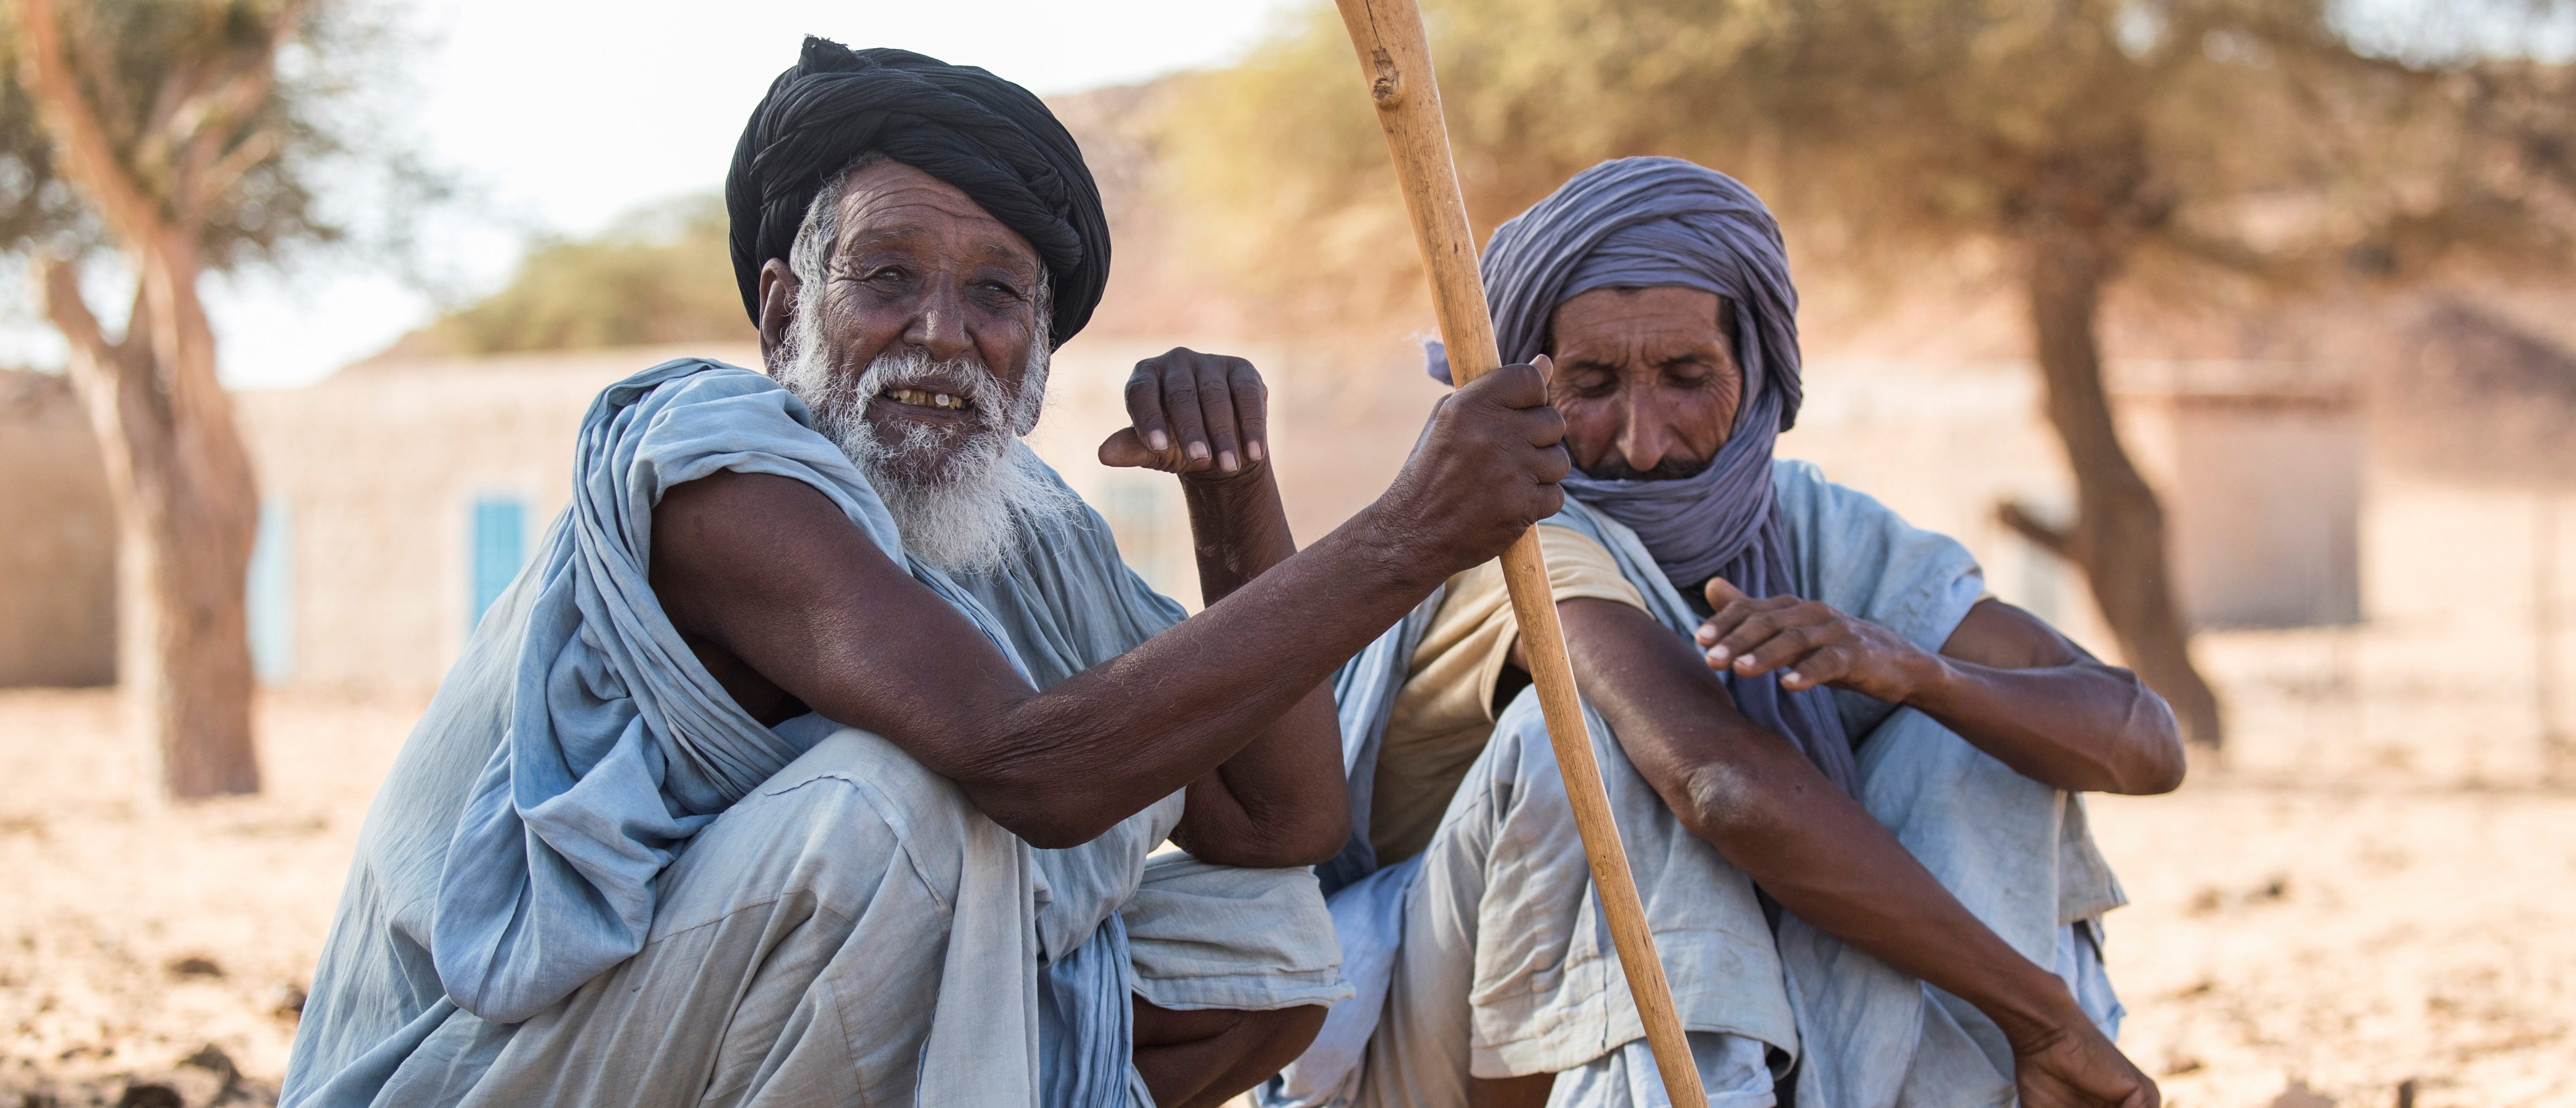 Men sit on the ground in Ouad Initi, eastern Mauritania, on November 21, 2018. - The Old Cities Festival takes place in Oualata from November 20 to November 26, 2018. (Photo by Thomas SAMSON / AFP) (Photo credit should read THOMAS SAMSON/AFP via Getty Images)